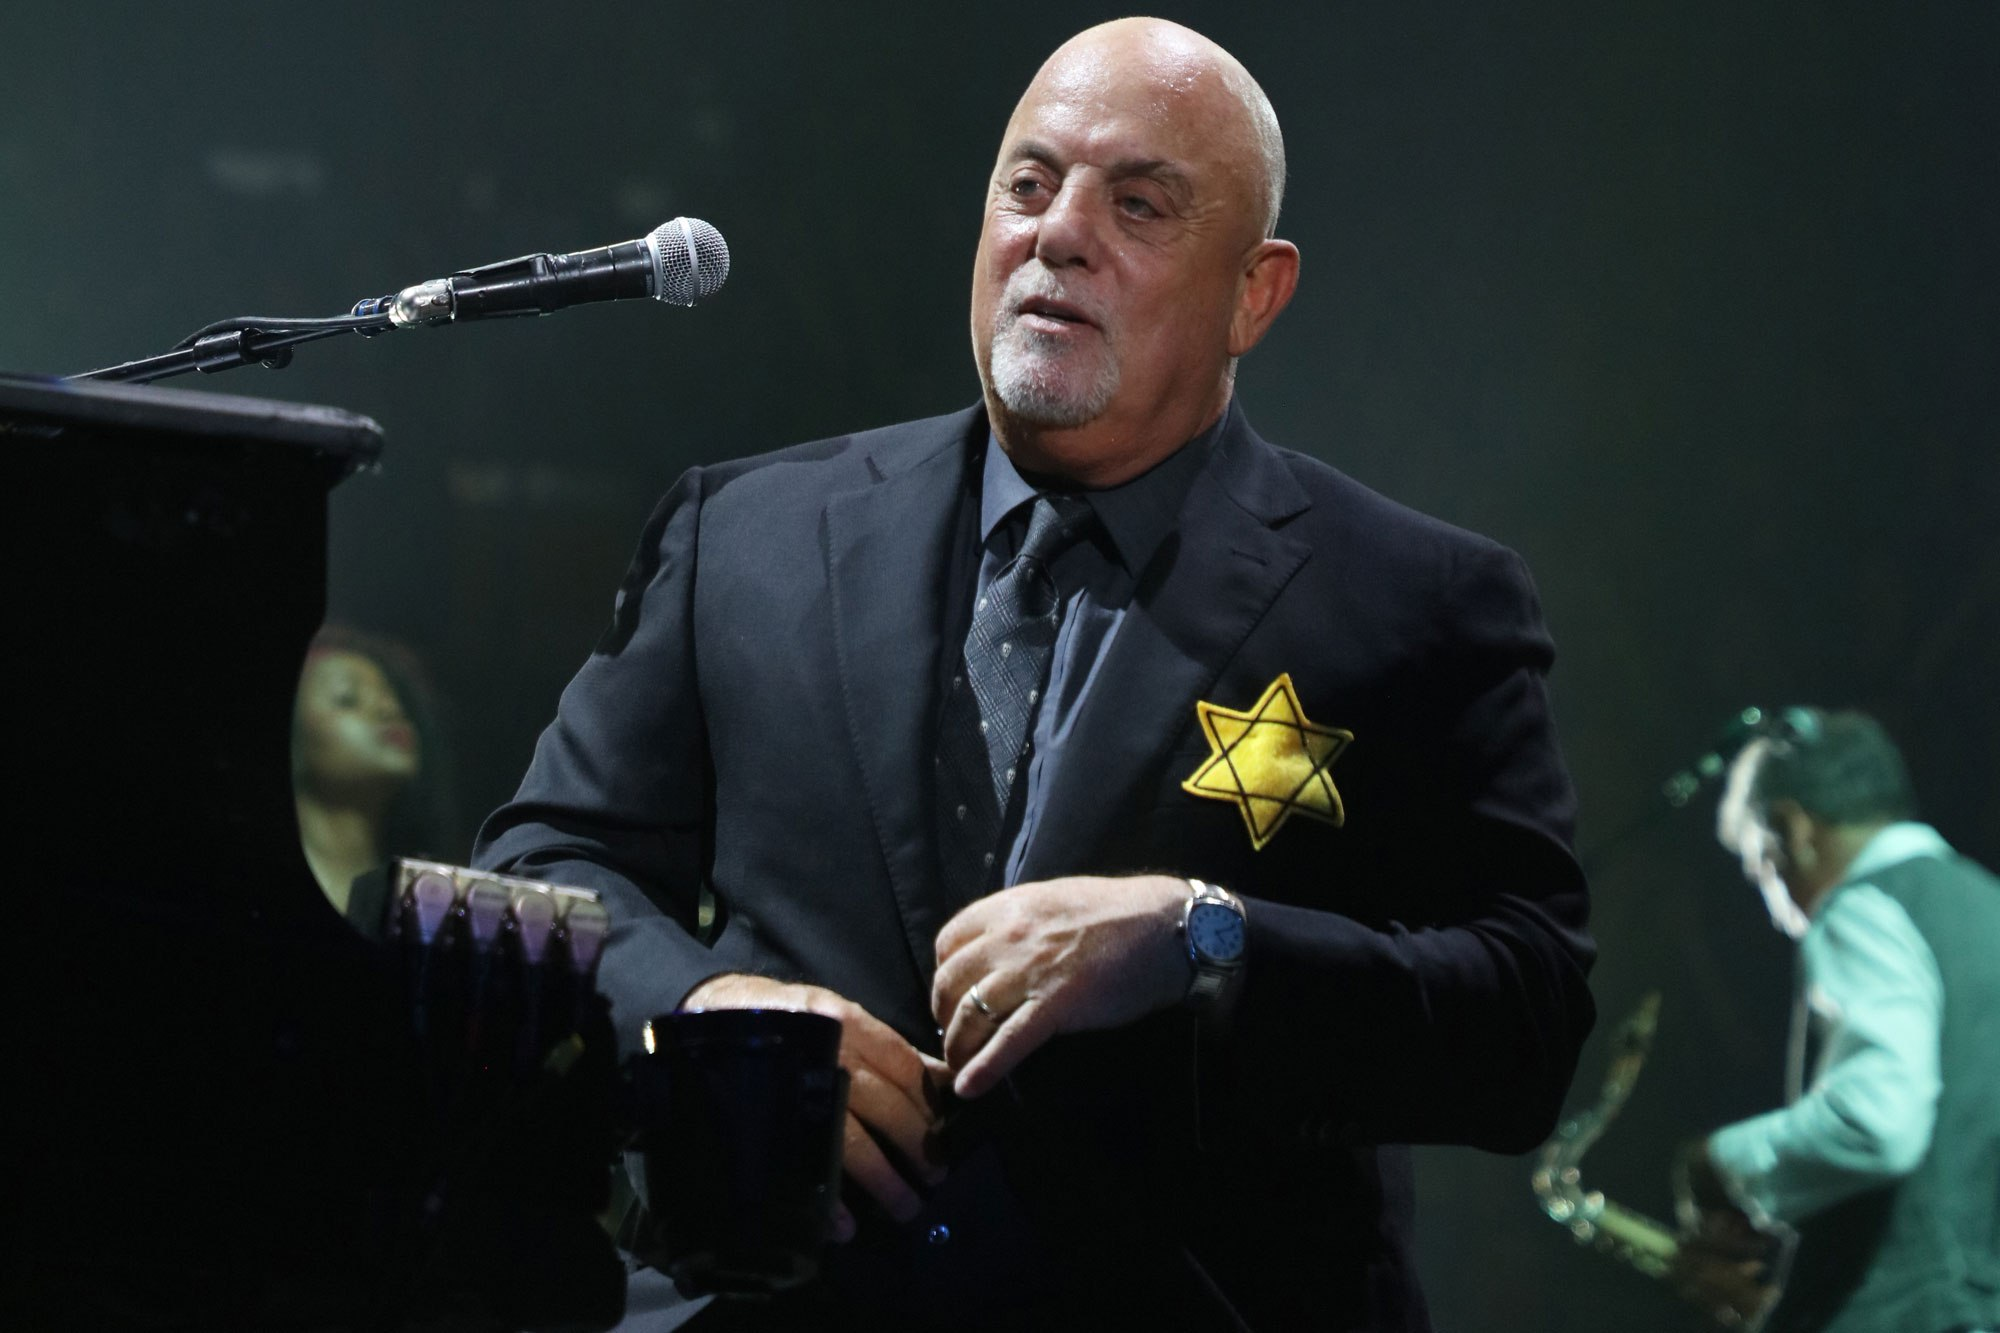 Billy Joel Wore Yellow Stars At His Concert Yesterday. Why It Matters.